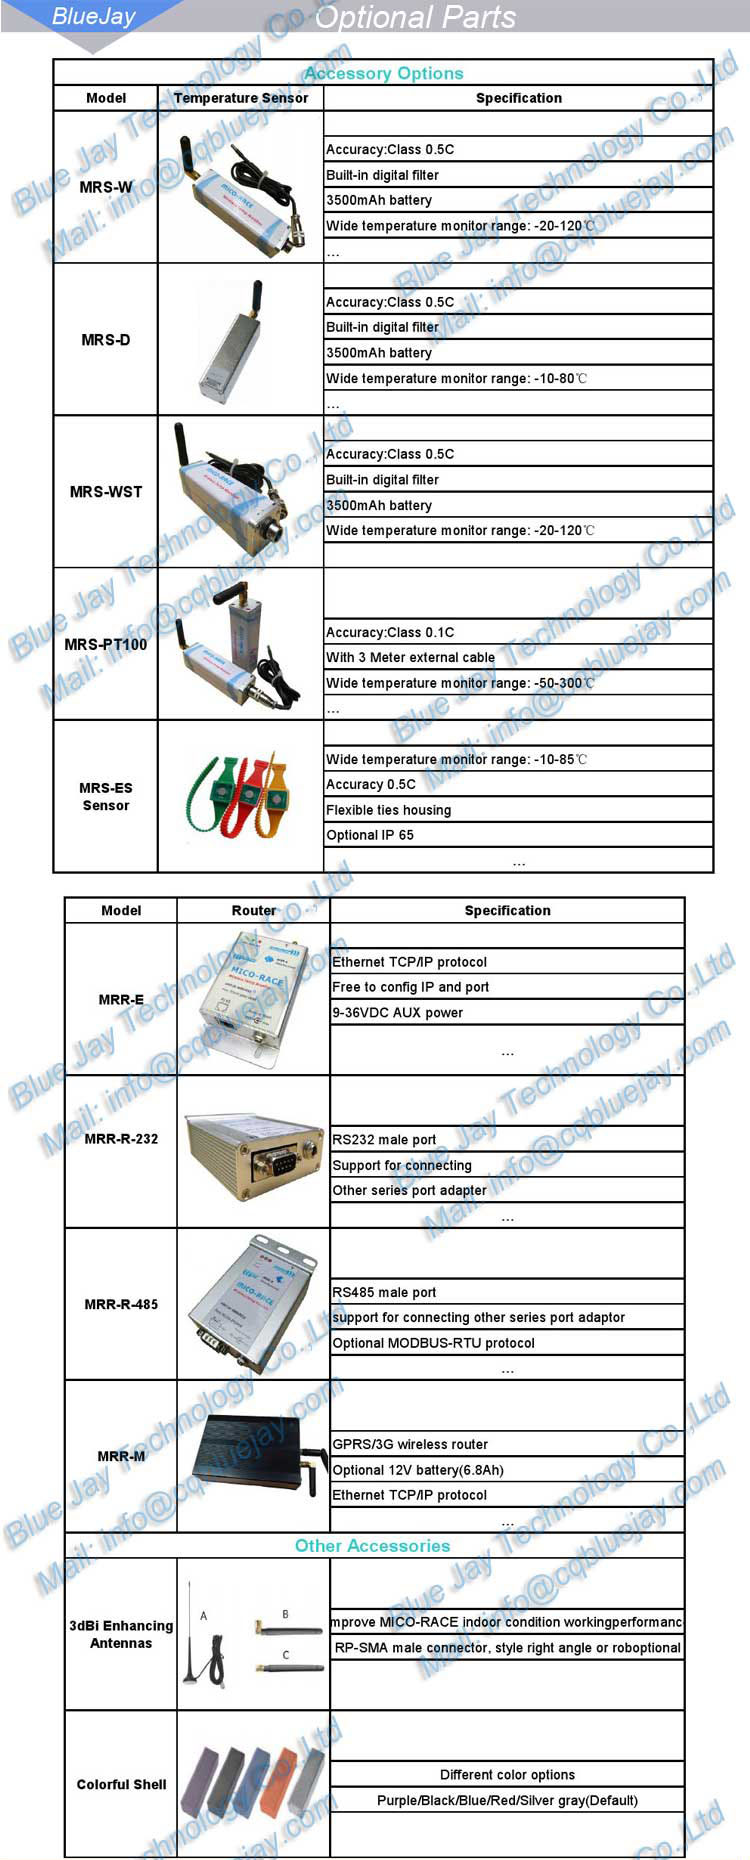 MRR-R-485 Temperature and Humidity recorder, wireless monitoring solution for cold chain transport